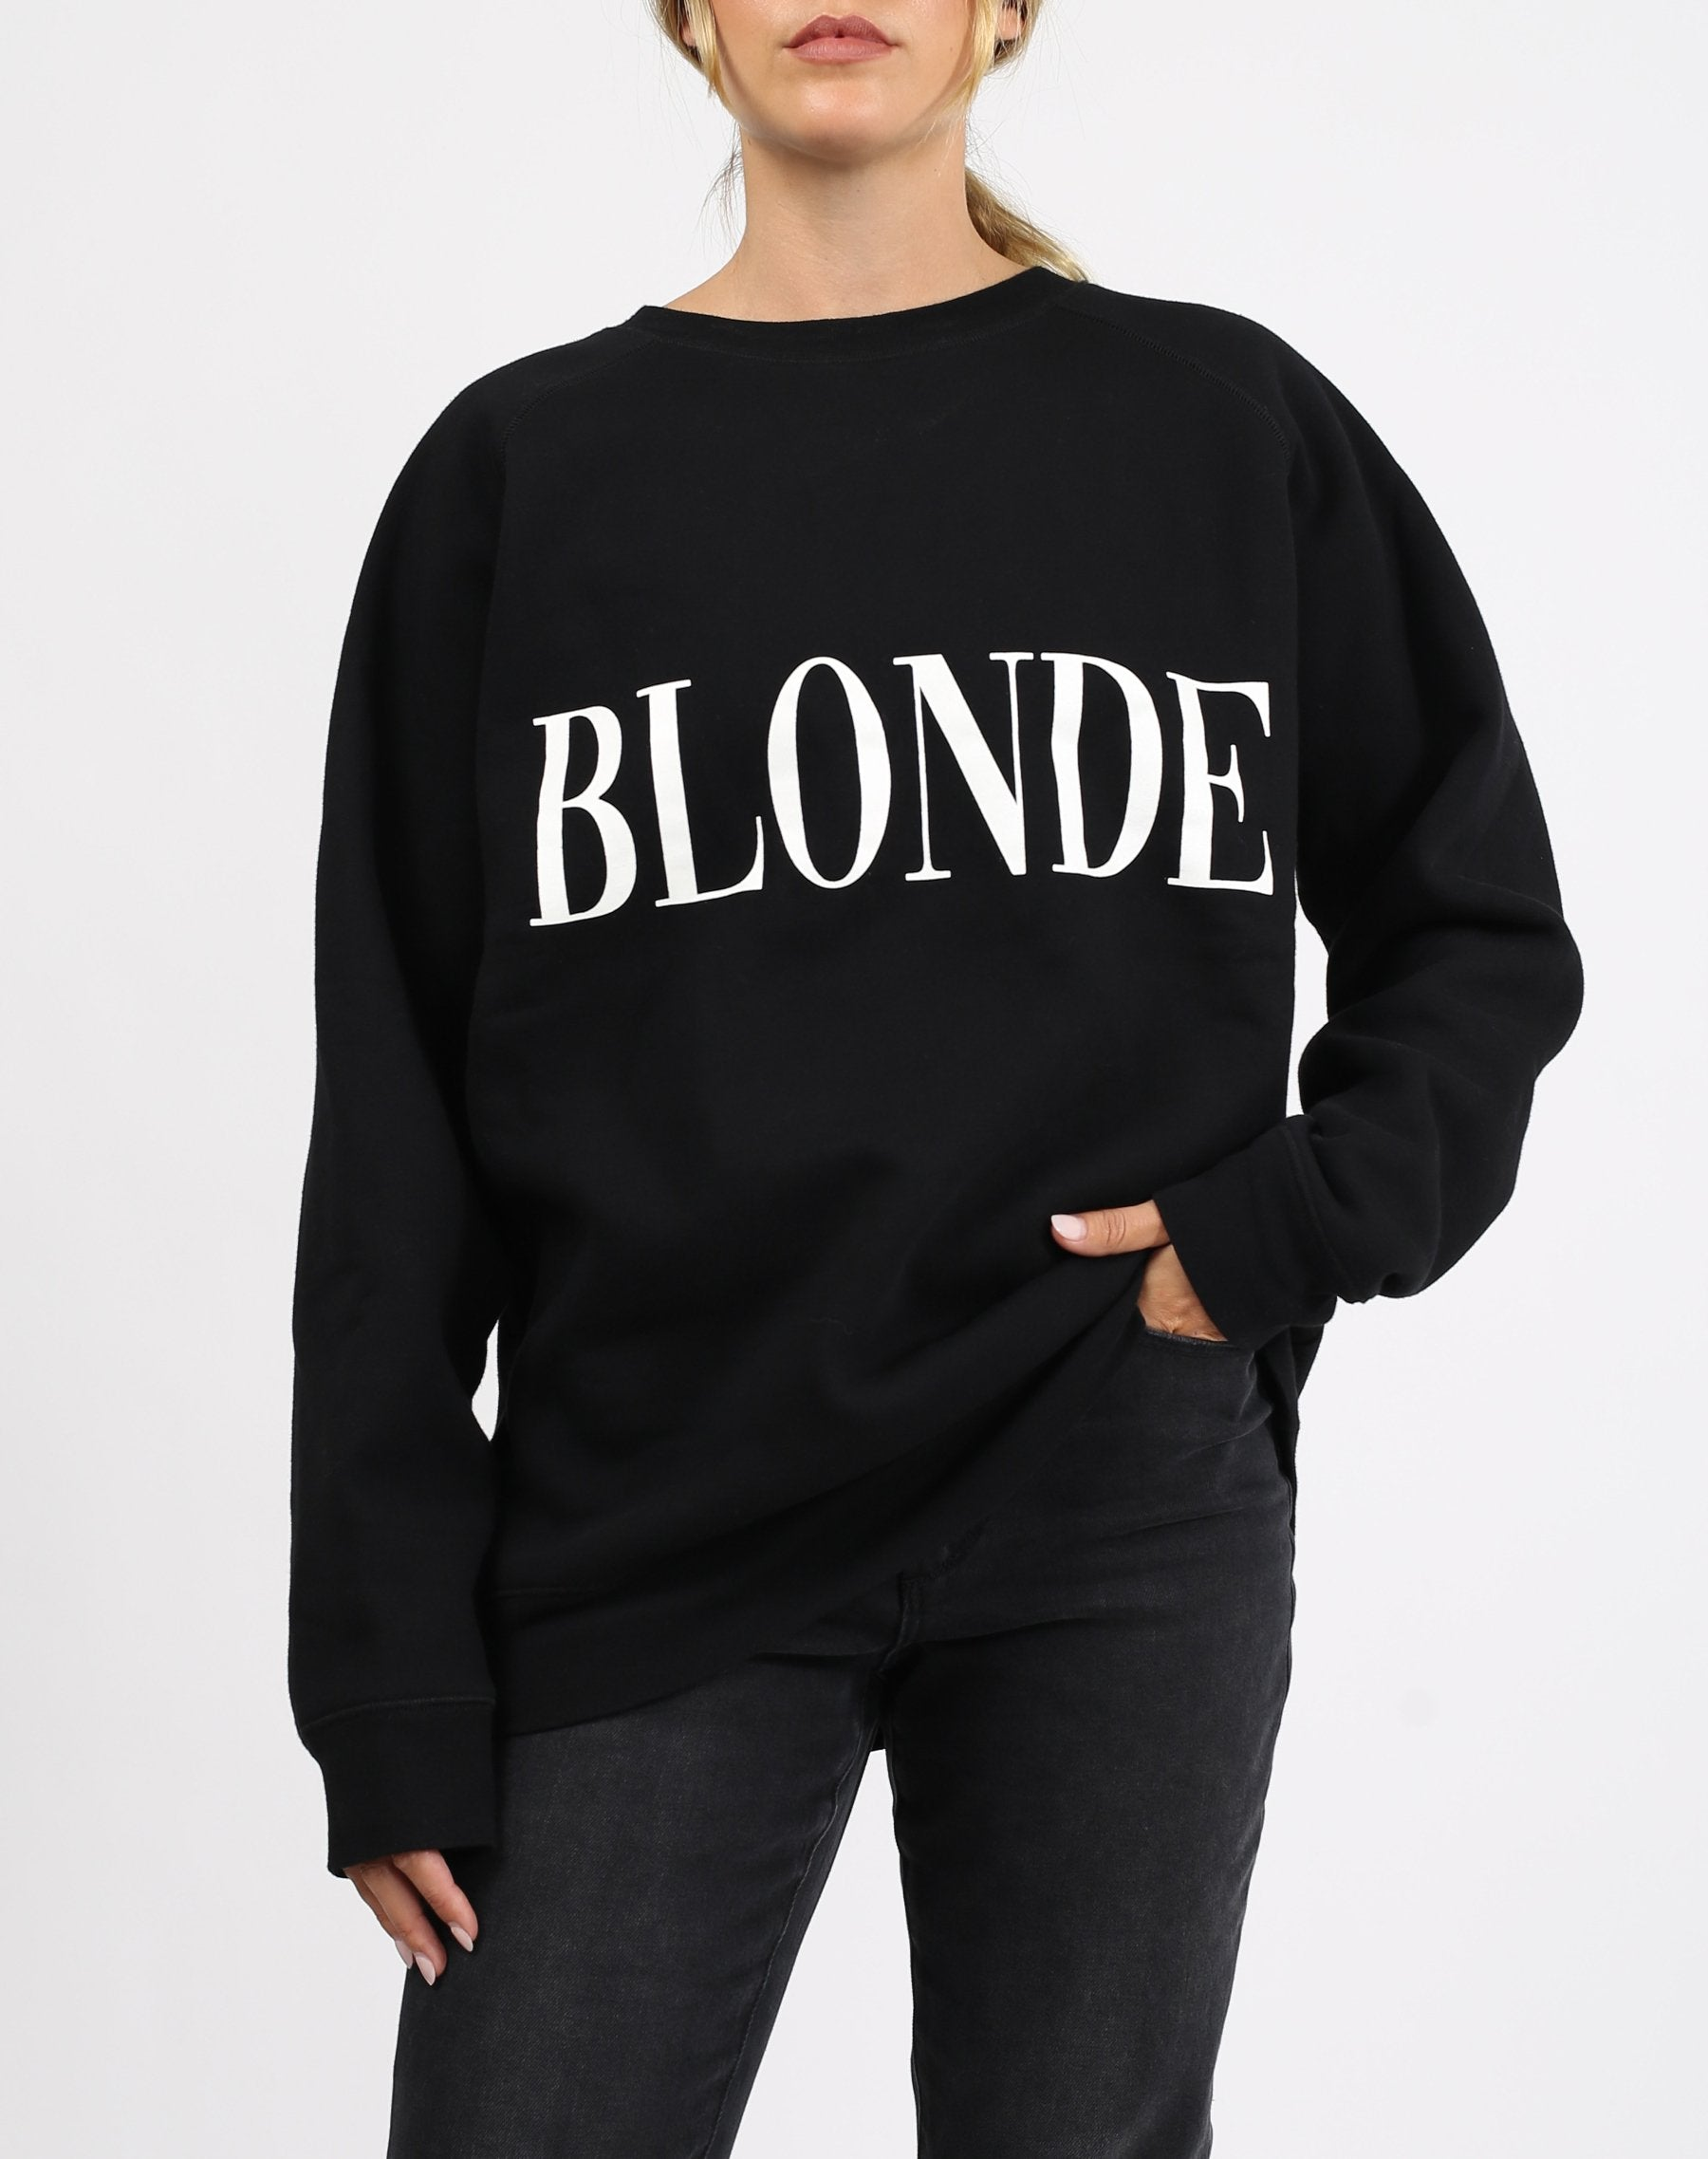 Blonde Sweater